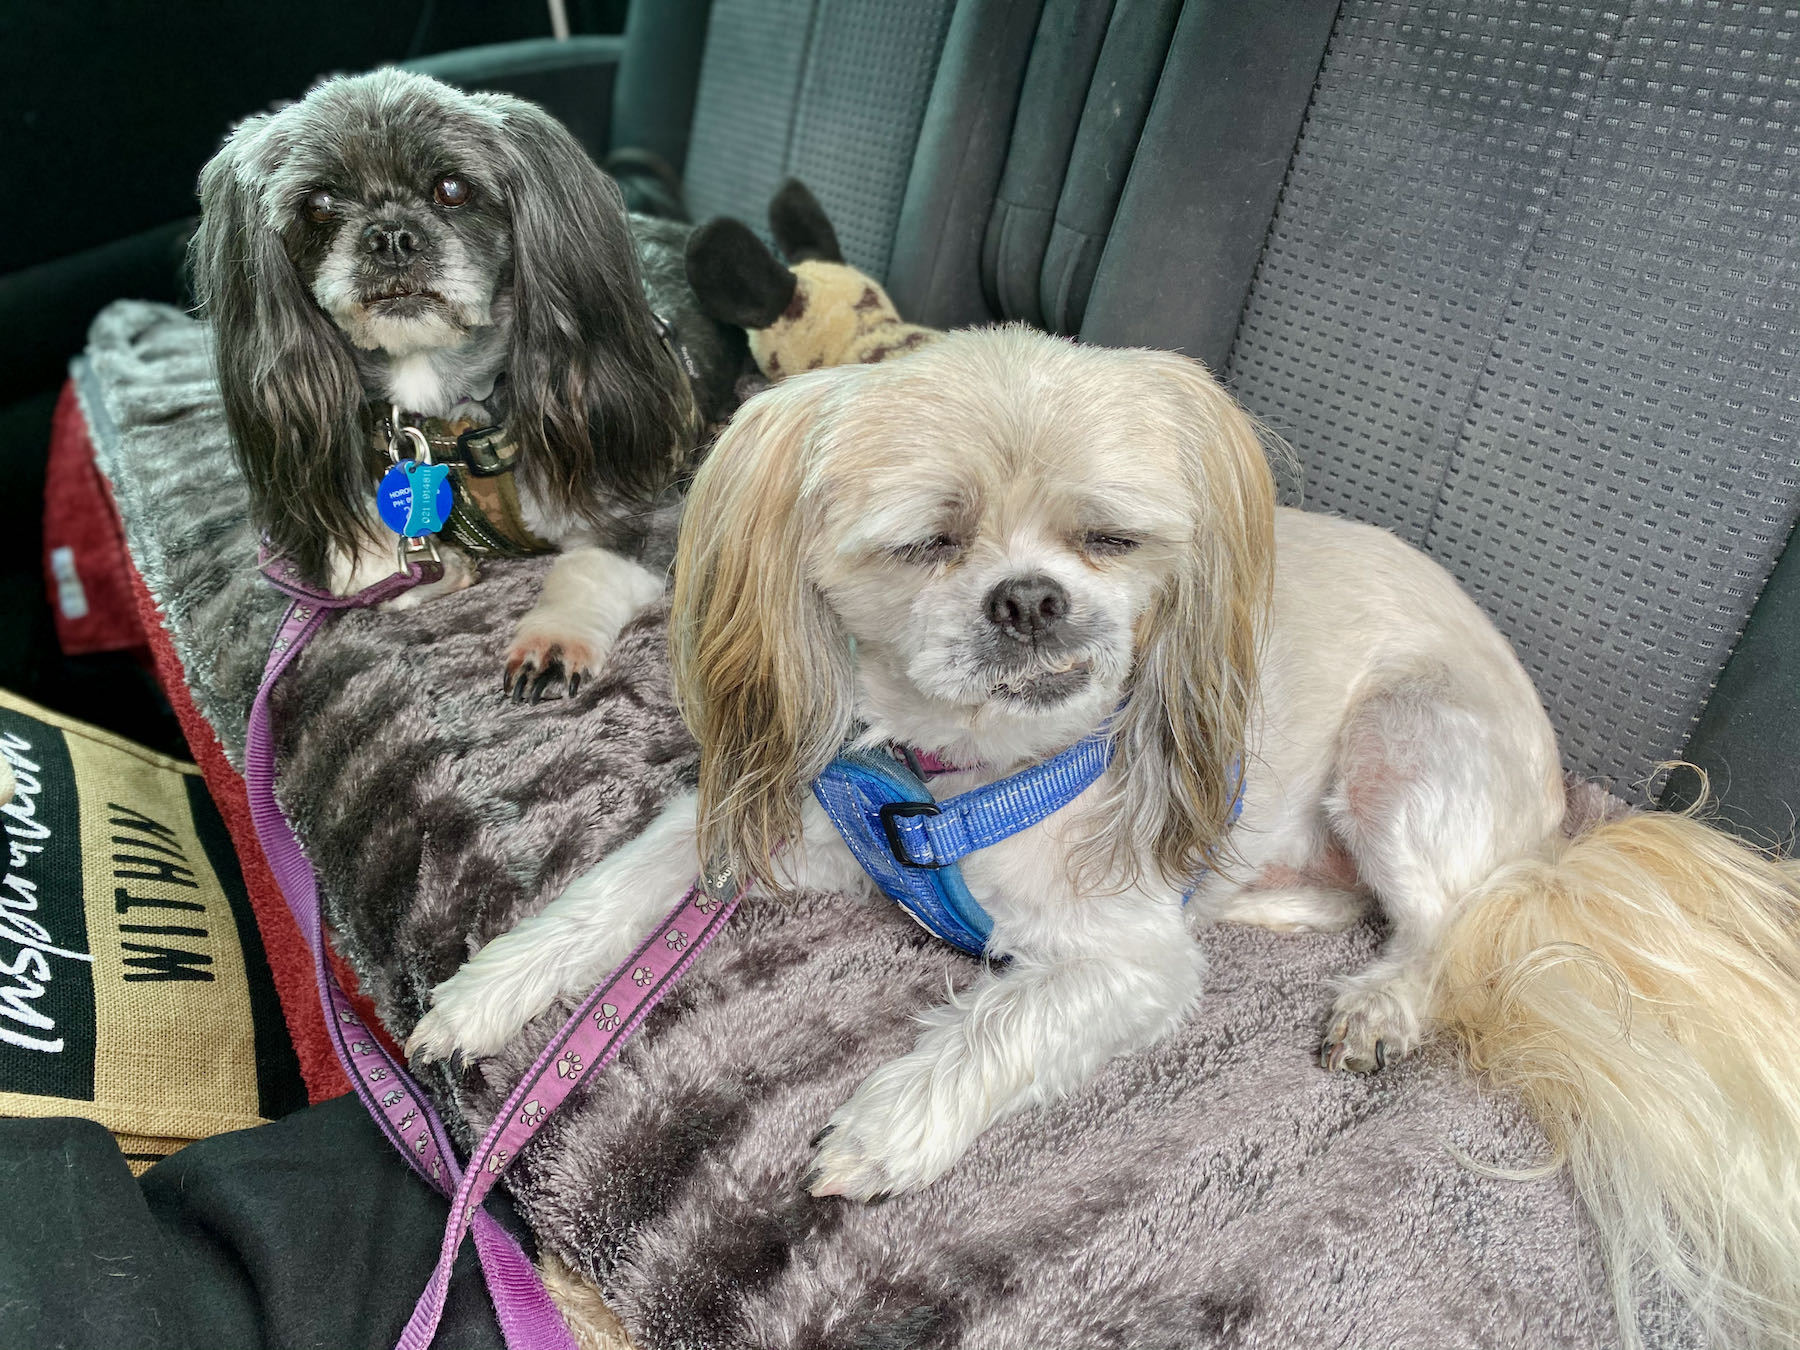 Two small freshly groomed dogs in a car.